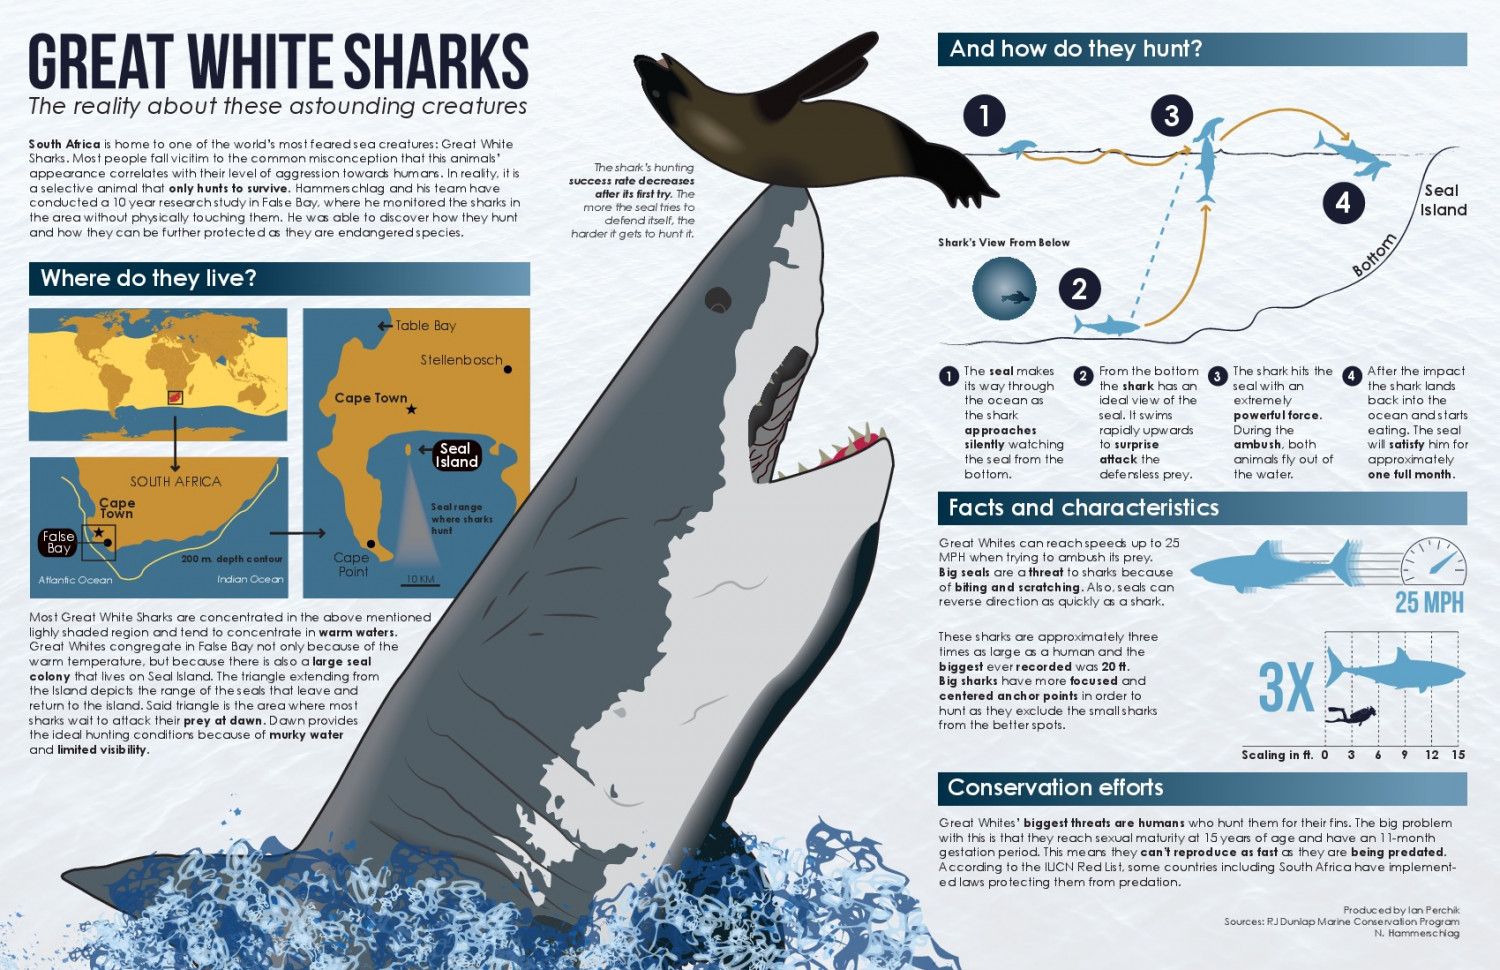 The Science Behind Great White Shark Predation